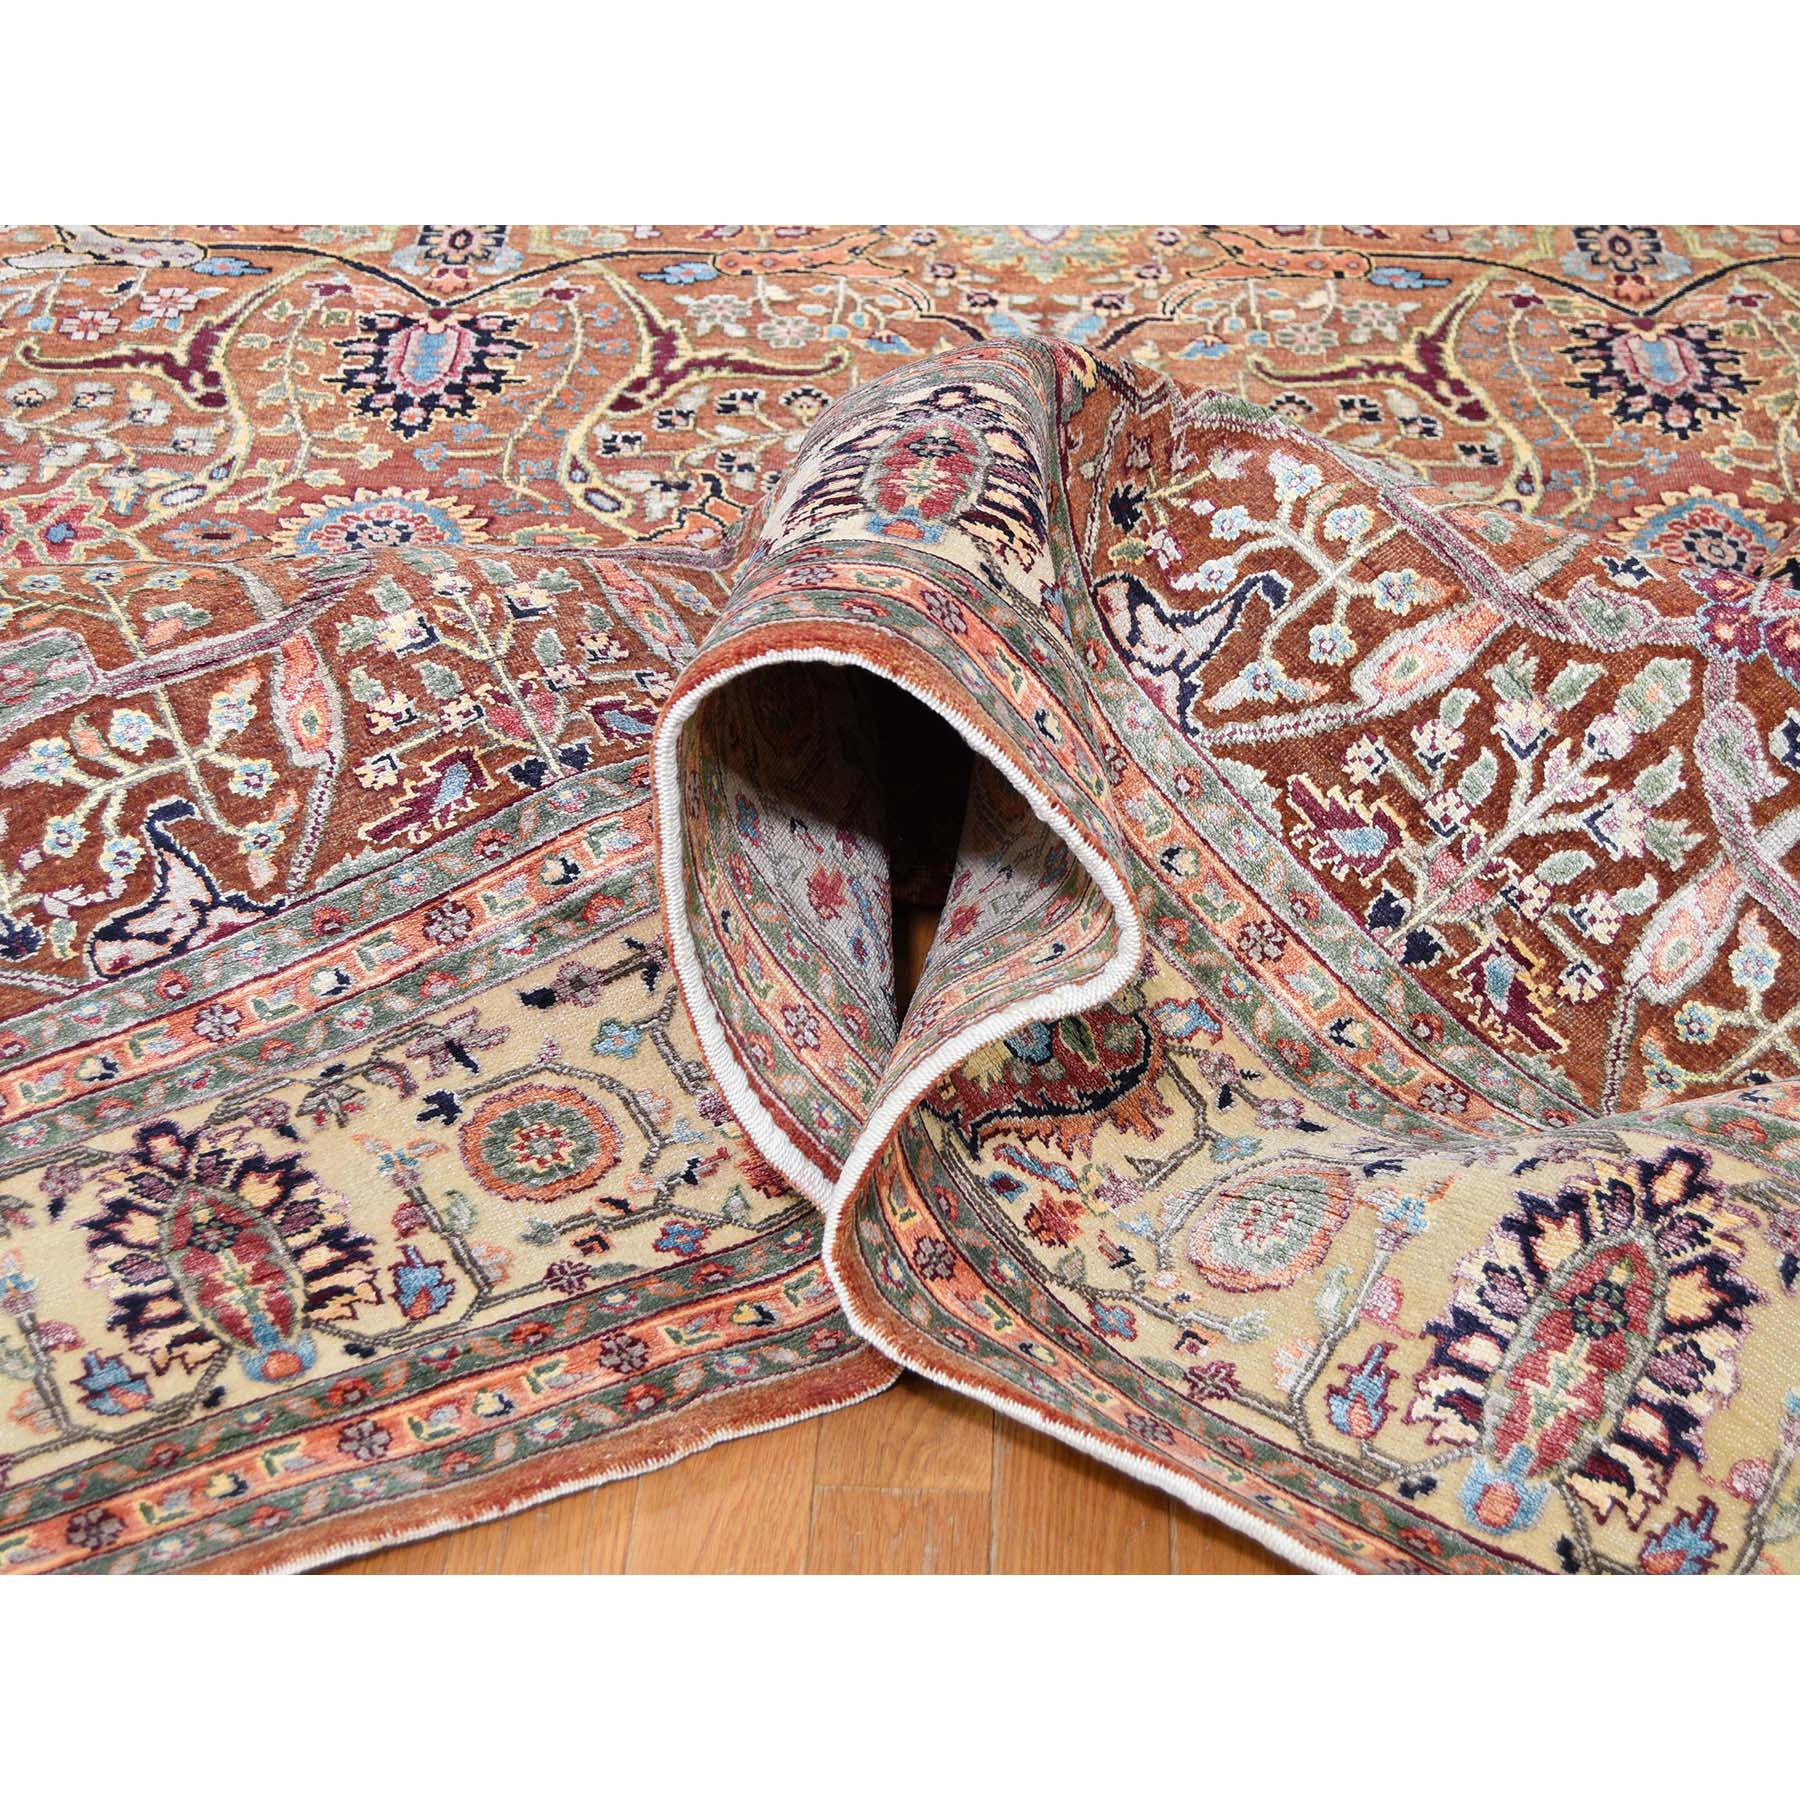 8-10 x12-4  Oushak Design Silk WIth Oxidized Wool Hand-Knotted Oriental Rug